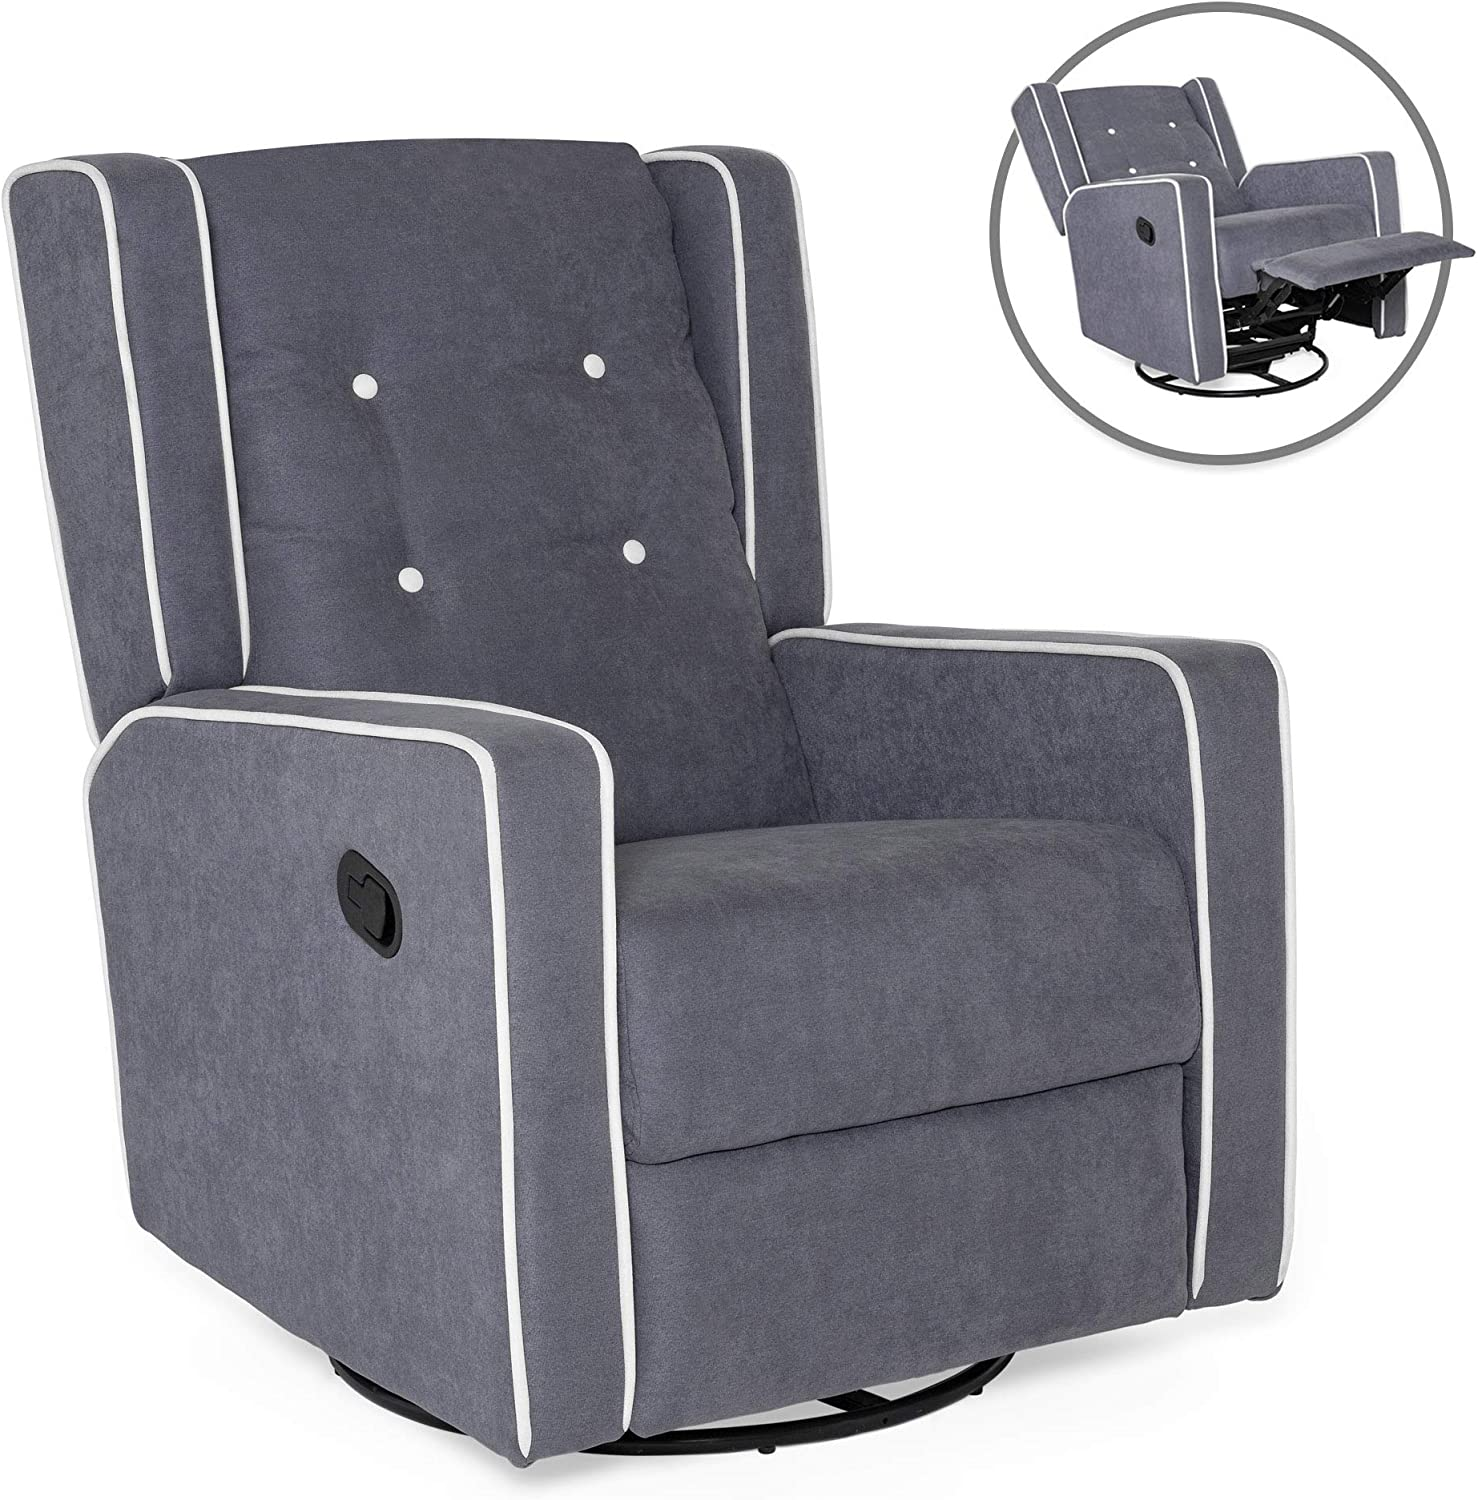 Shop Best Choice Products Mid-Century Tufted Polyester Upholstered Recliner Rocking Chair - 360-Degree from Amazon on Openhaus